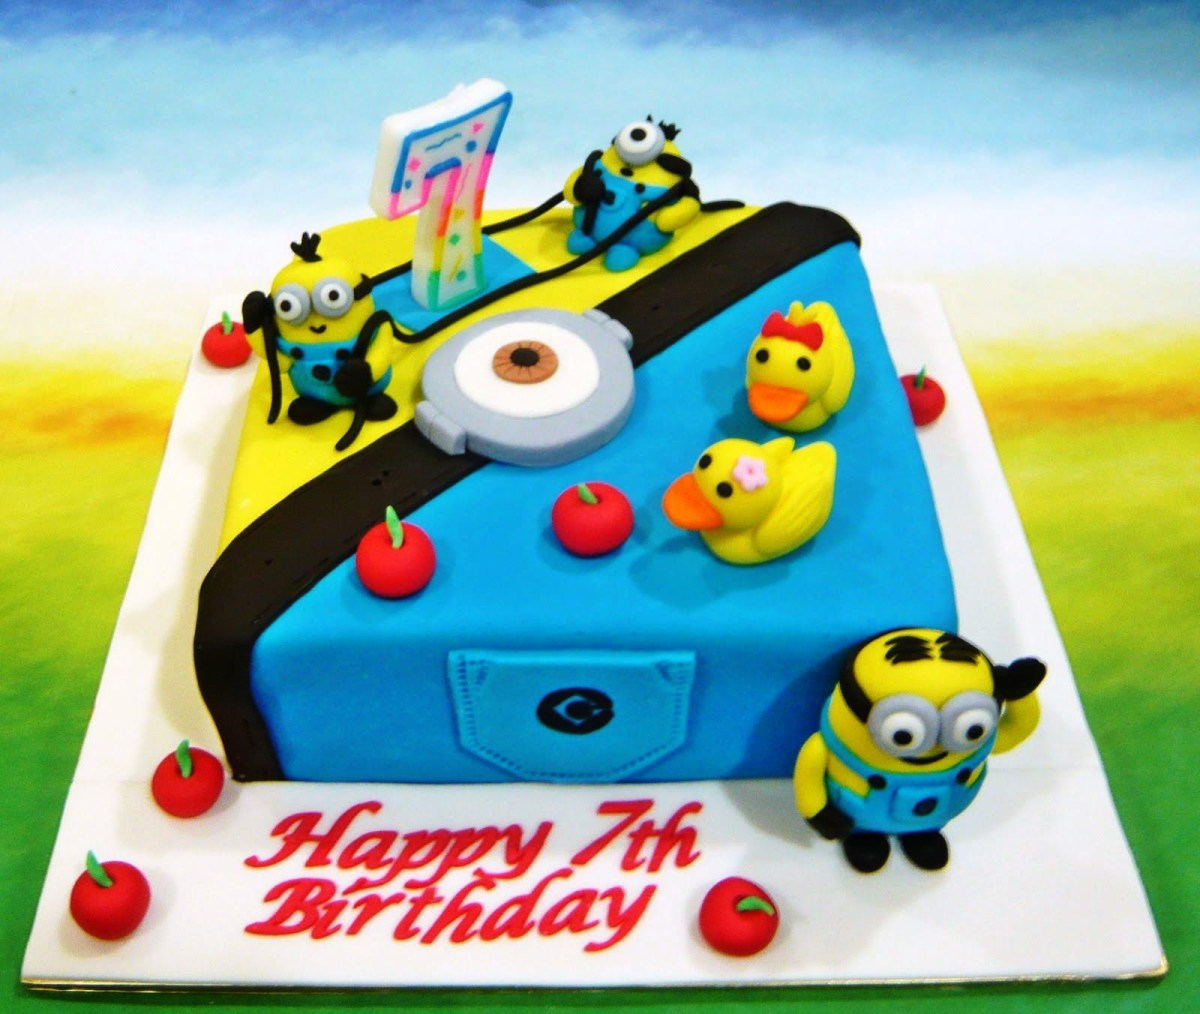 Swell Minion Birthday Cakes How To Make Despicable Me Birthday Cake Funny Birthday Cards Online Inifofree Goldxyz